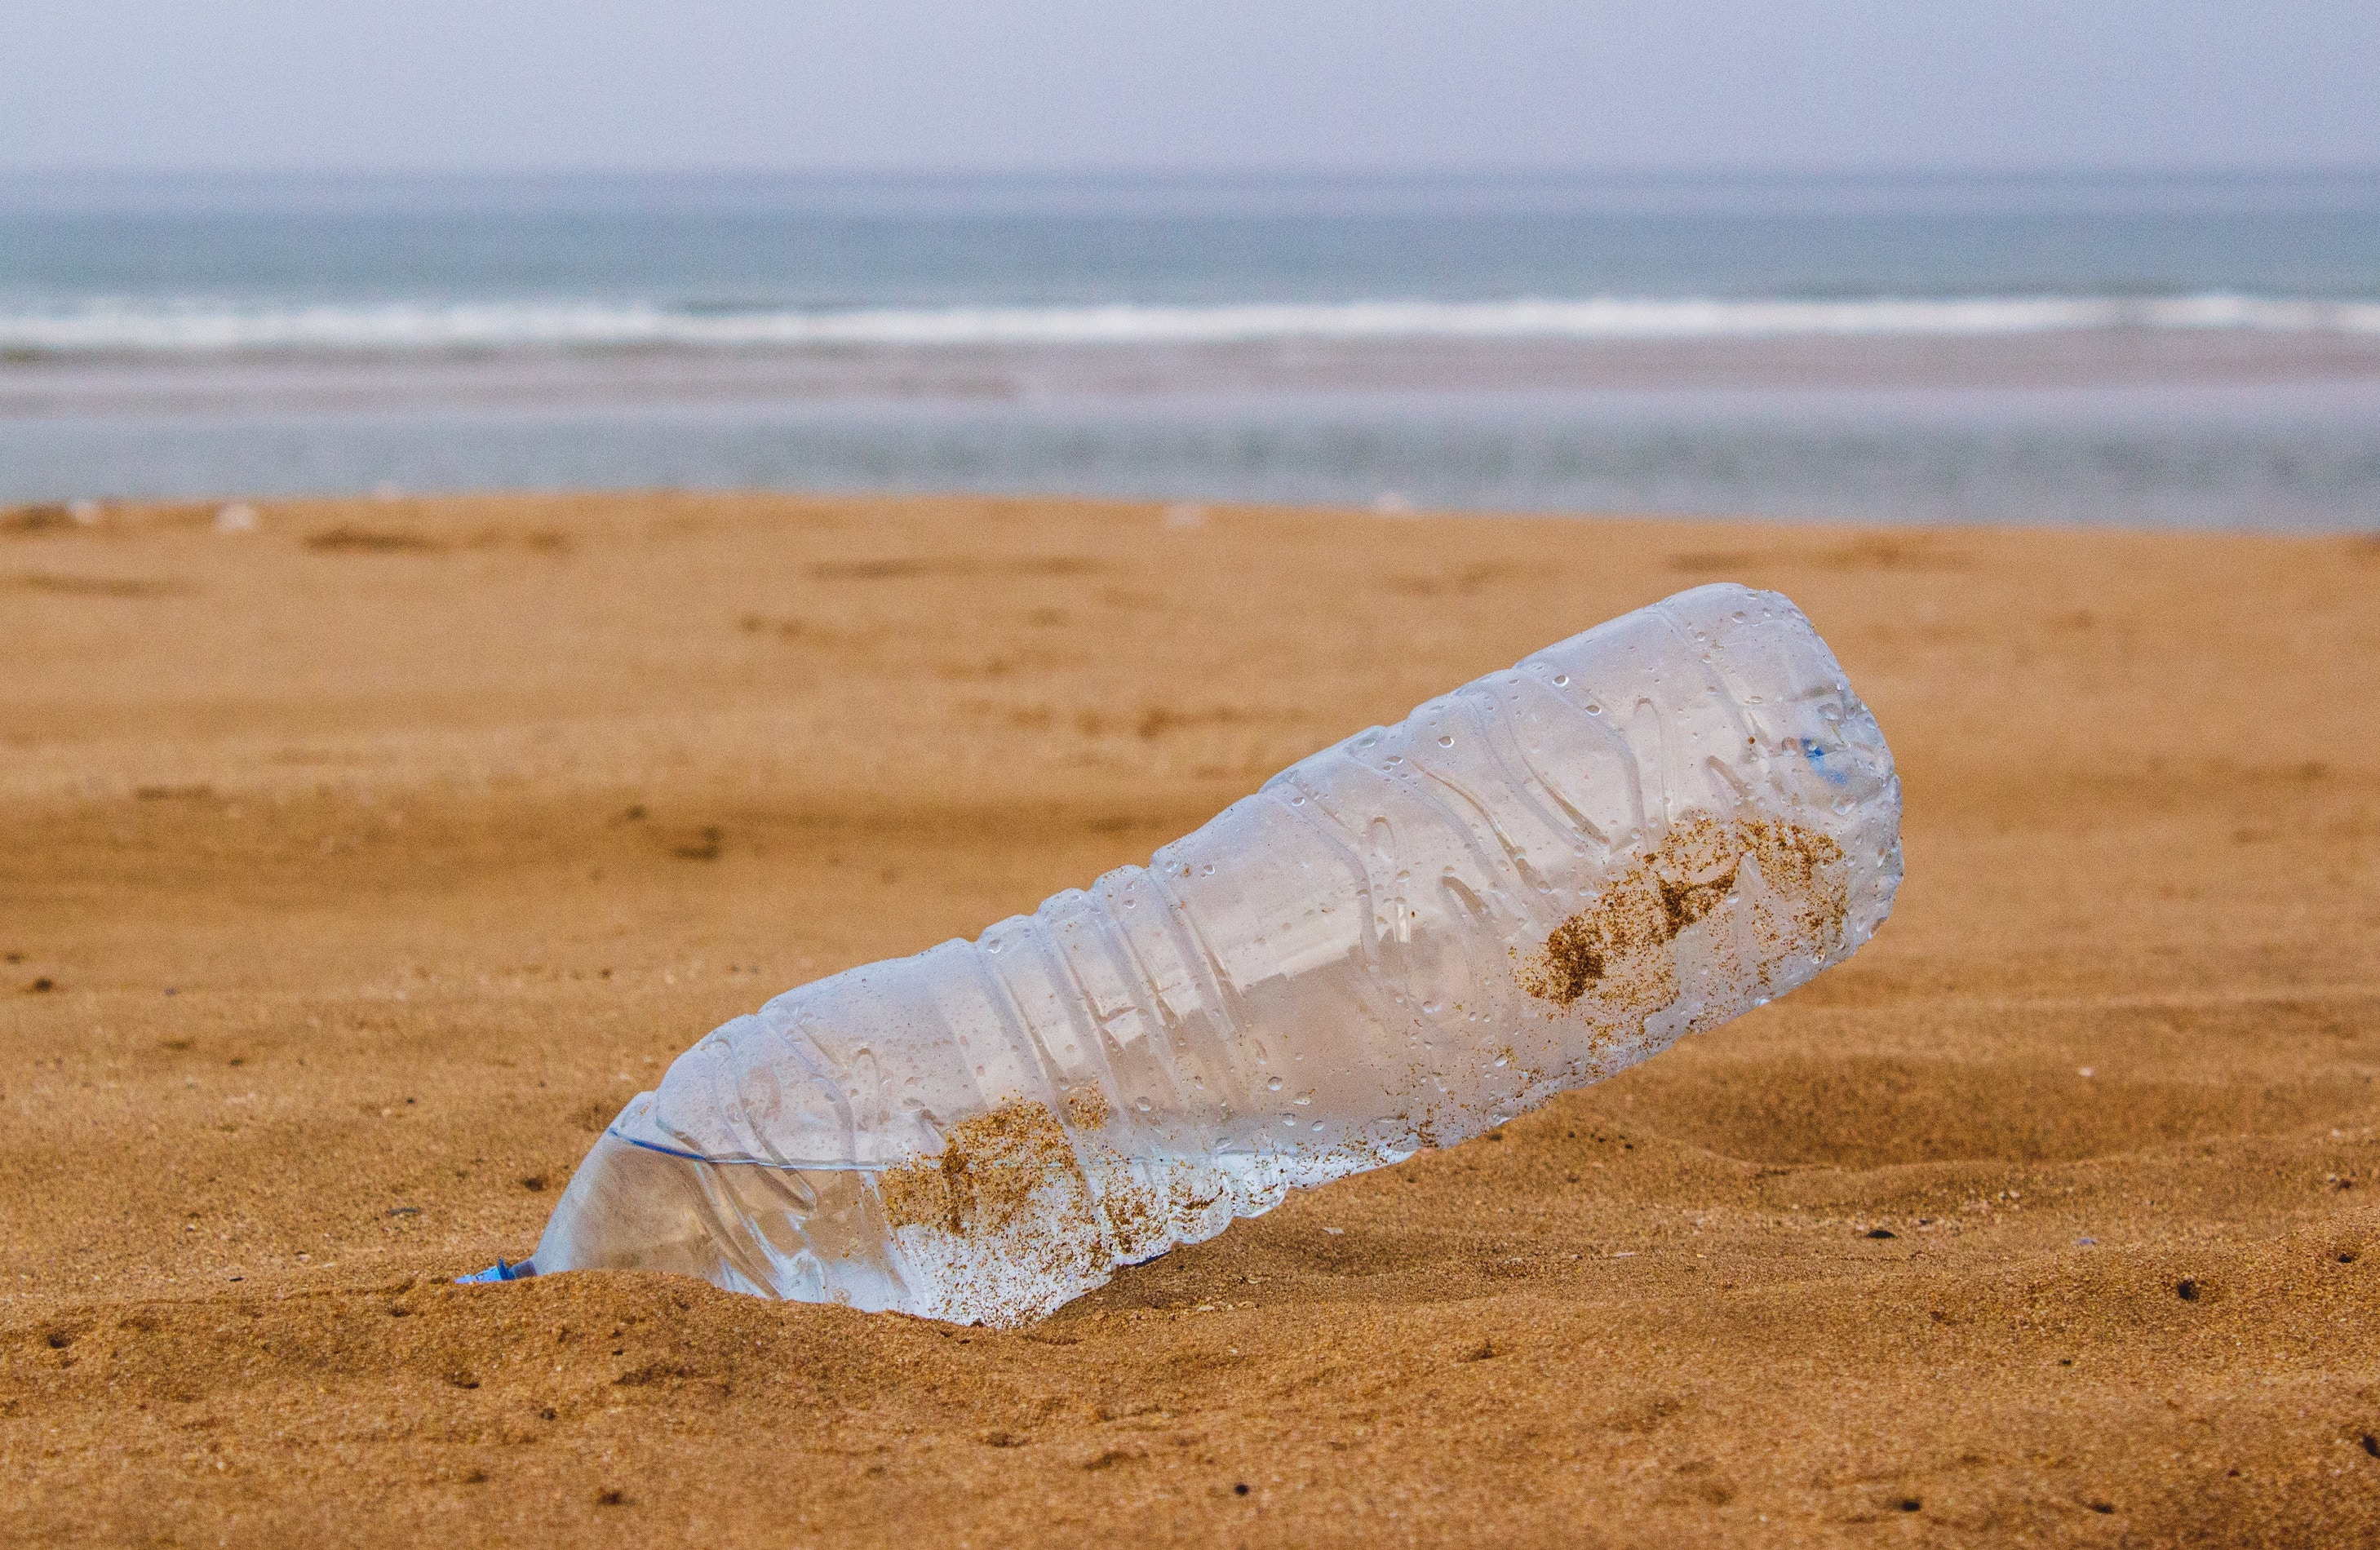 September 15 was California Coastal Cleanup Day